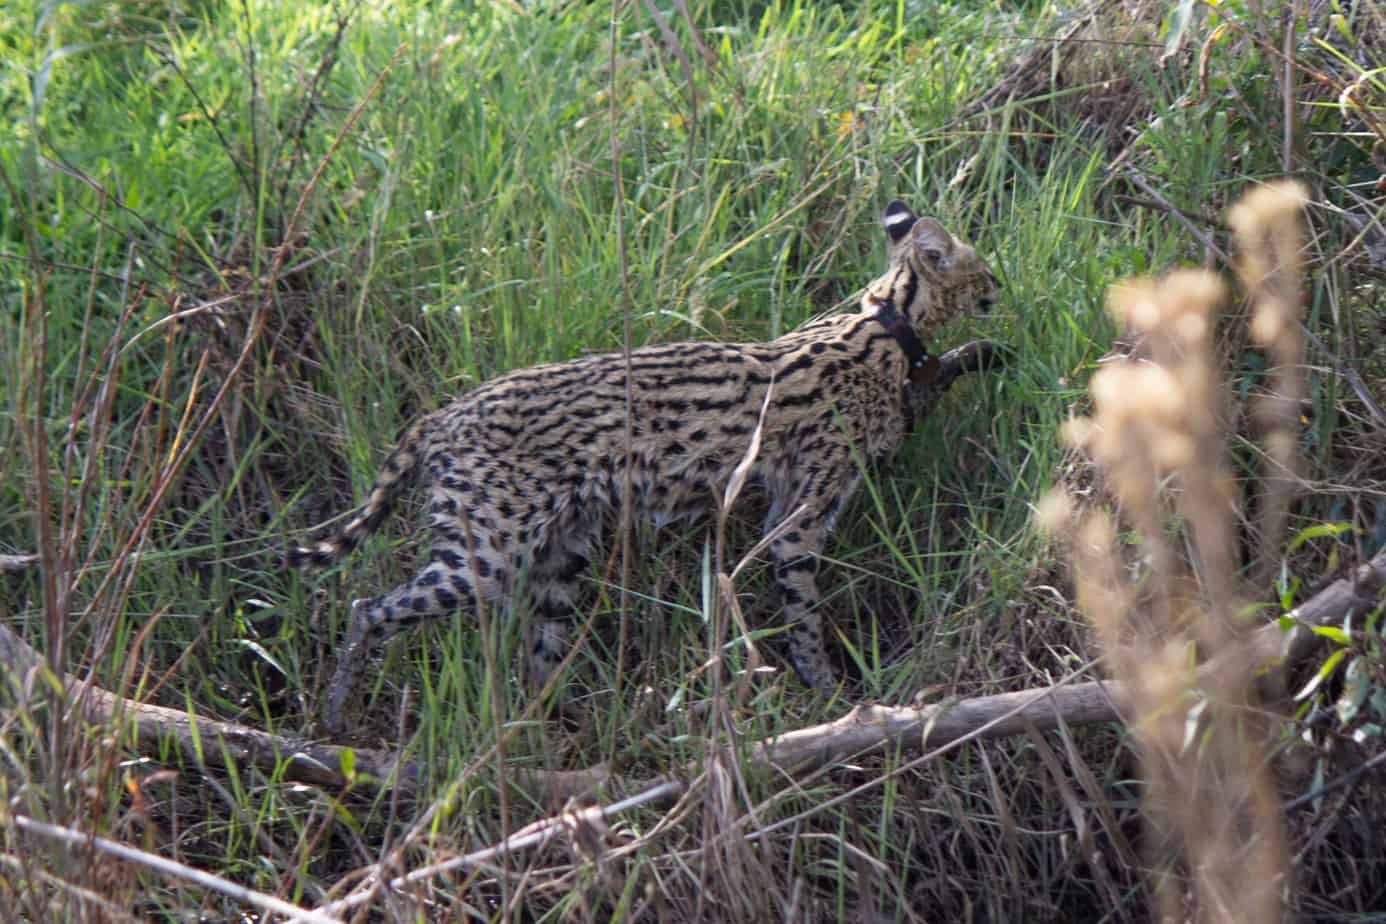 IMG 9070 1 1 - Servals & Caracals, Oh My!